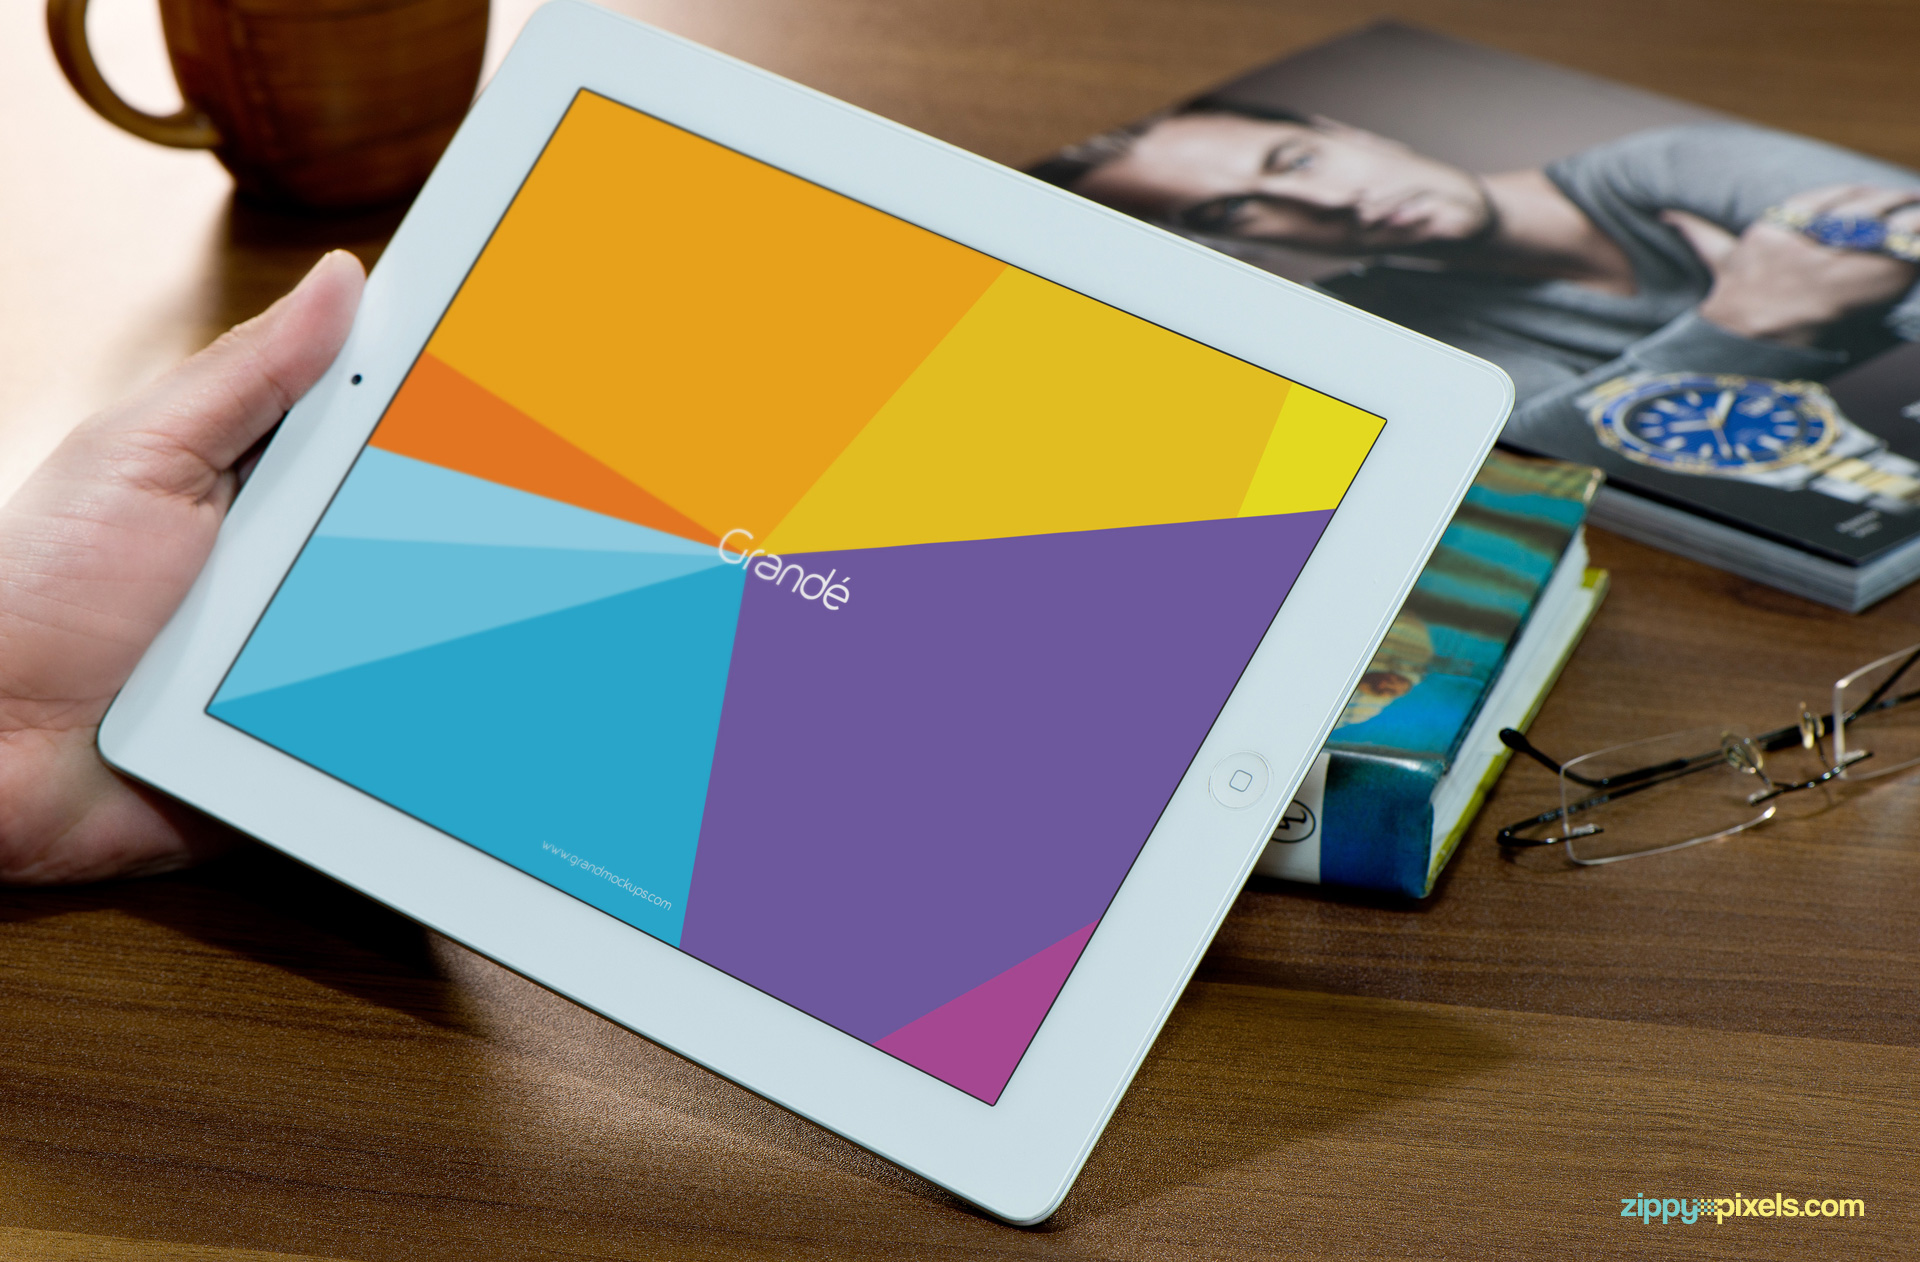 Free iPad Mockup of iPad held in hand with books in backgournd